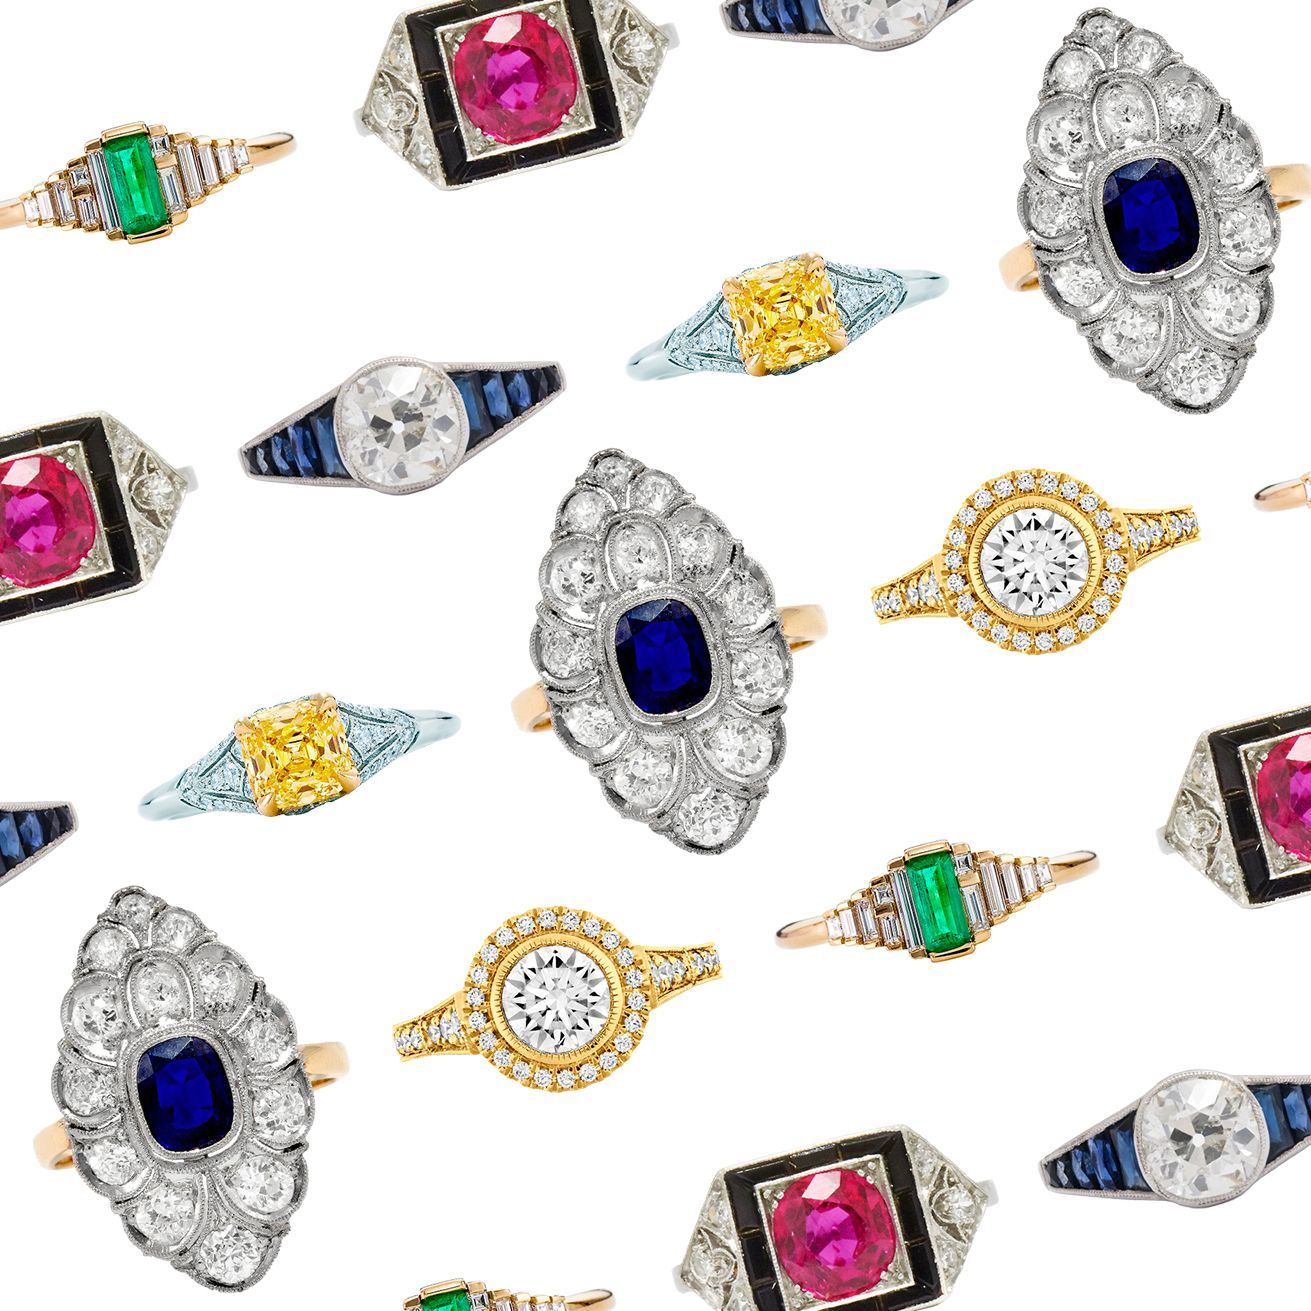 17 Art Deco Engagement Rings to Swoon Over